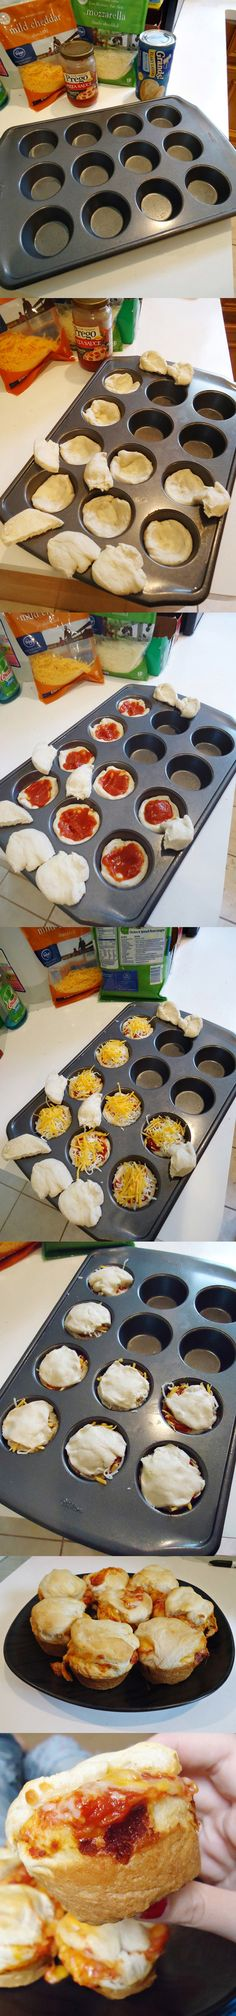 Pizza Cupcakes - How Cool is That? - Click for Recipe